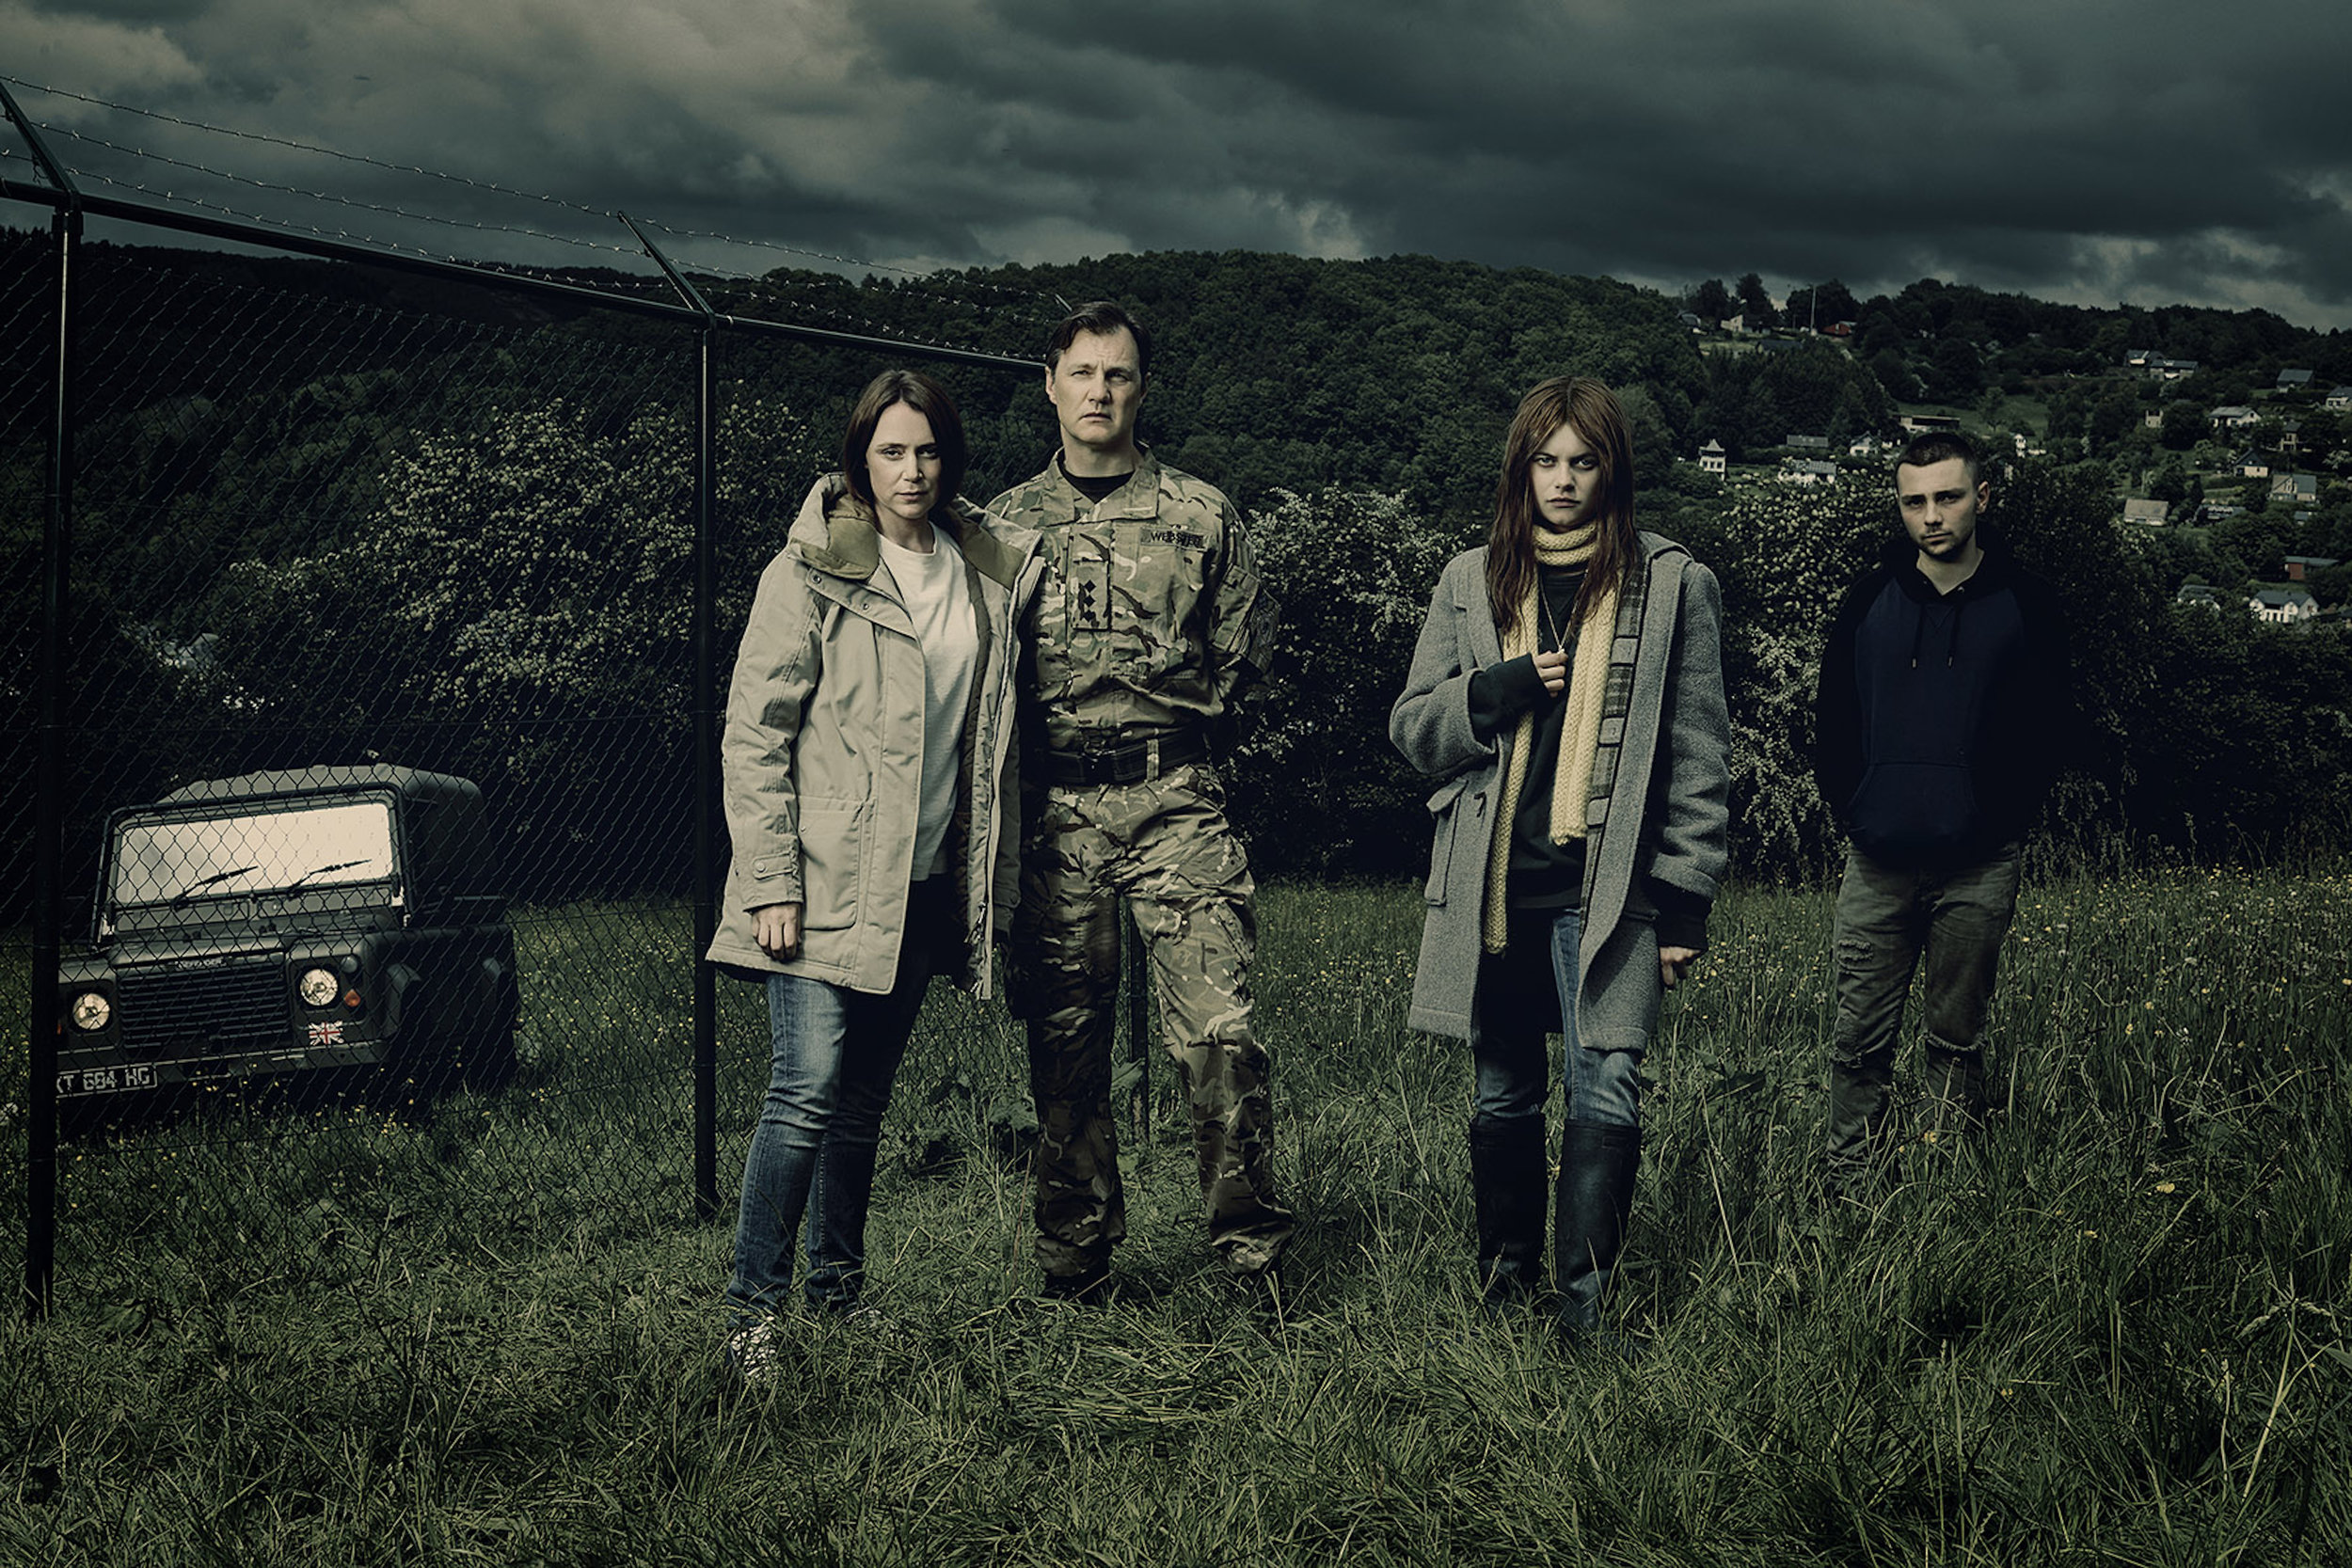 Keeley Hawes (as Gemma Webster), David Morrissey (as Sam Webster), Abigail Hardingham (as Alice Webster), Jake Davis (as Ma.jpg